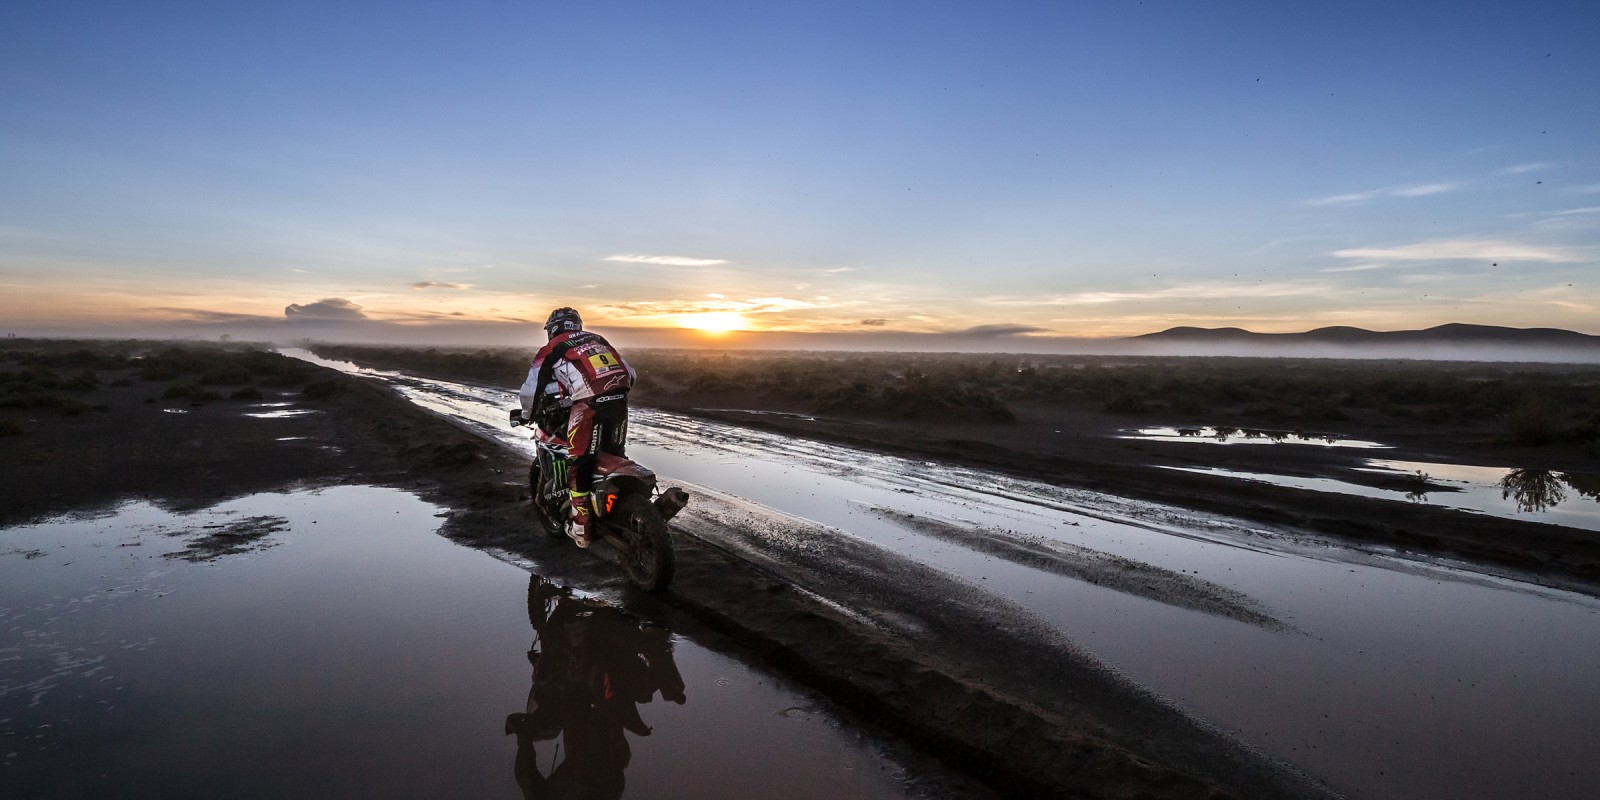 Ricky Brabec at the 2017 Dakar Rally